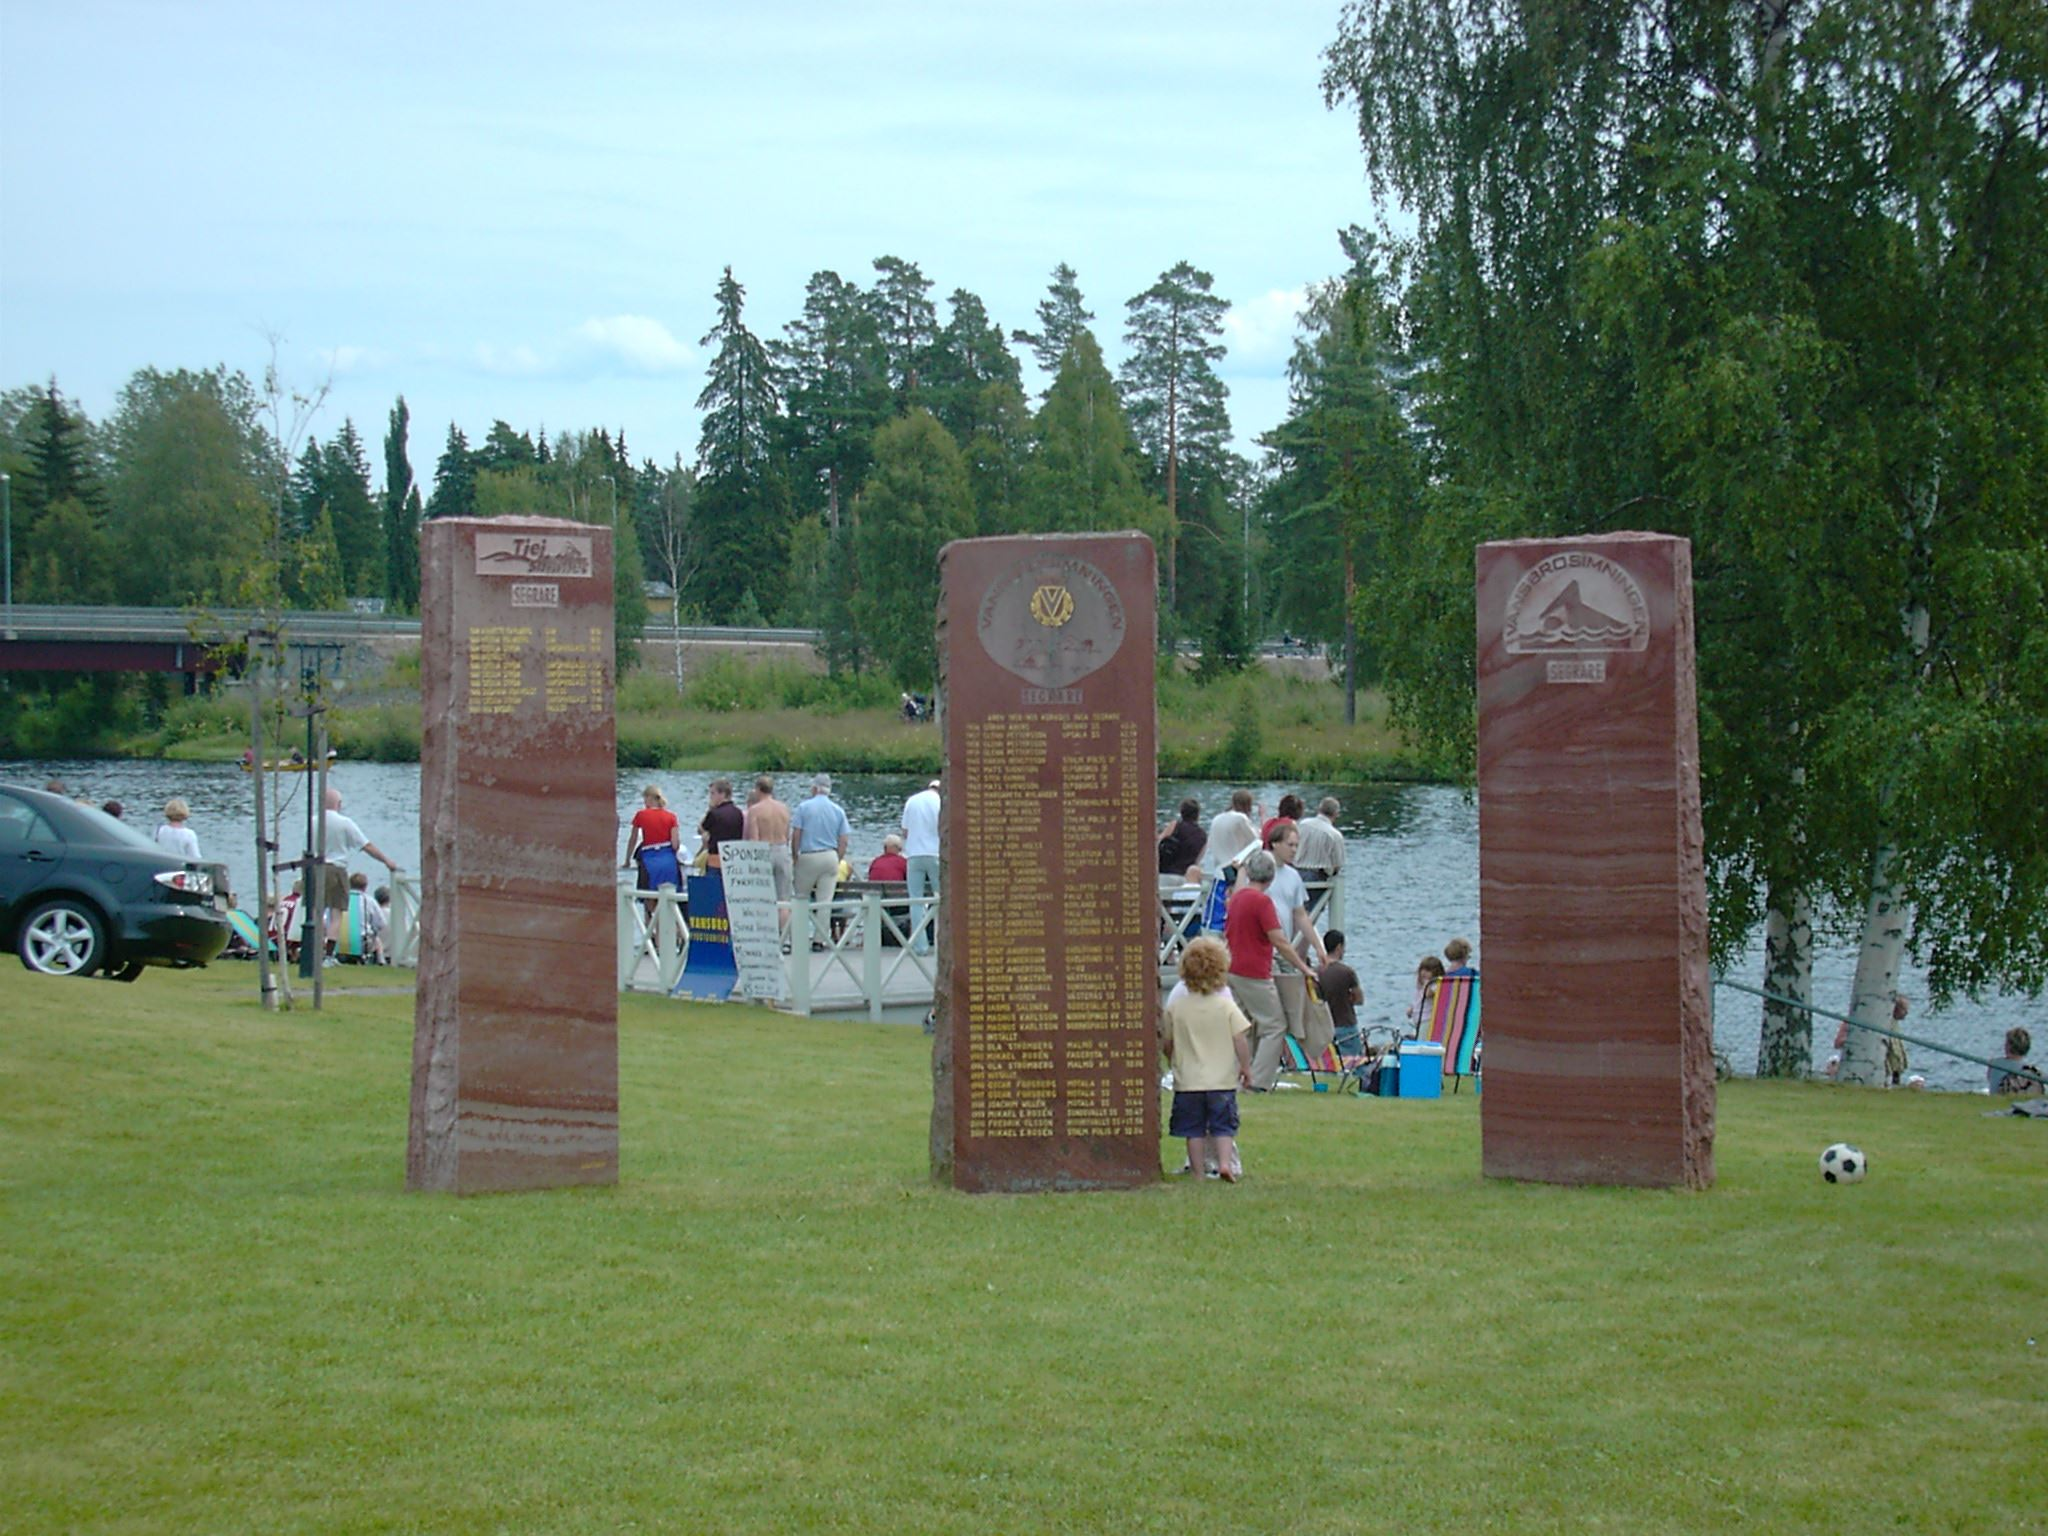 Memorial stones of the winners of Vansbrosimningen and Vansbro Tjejsim